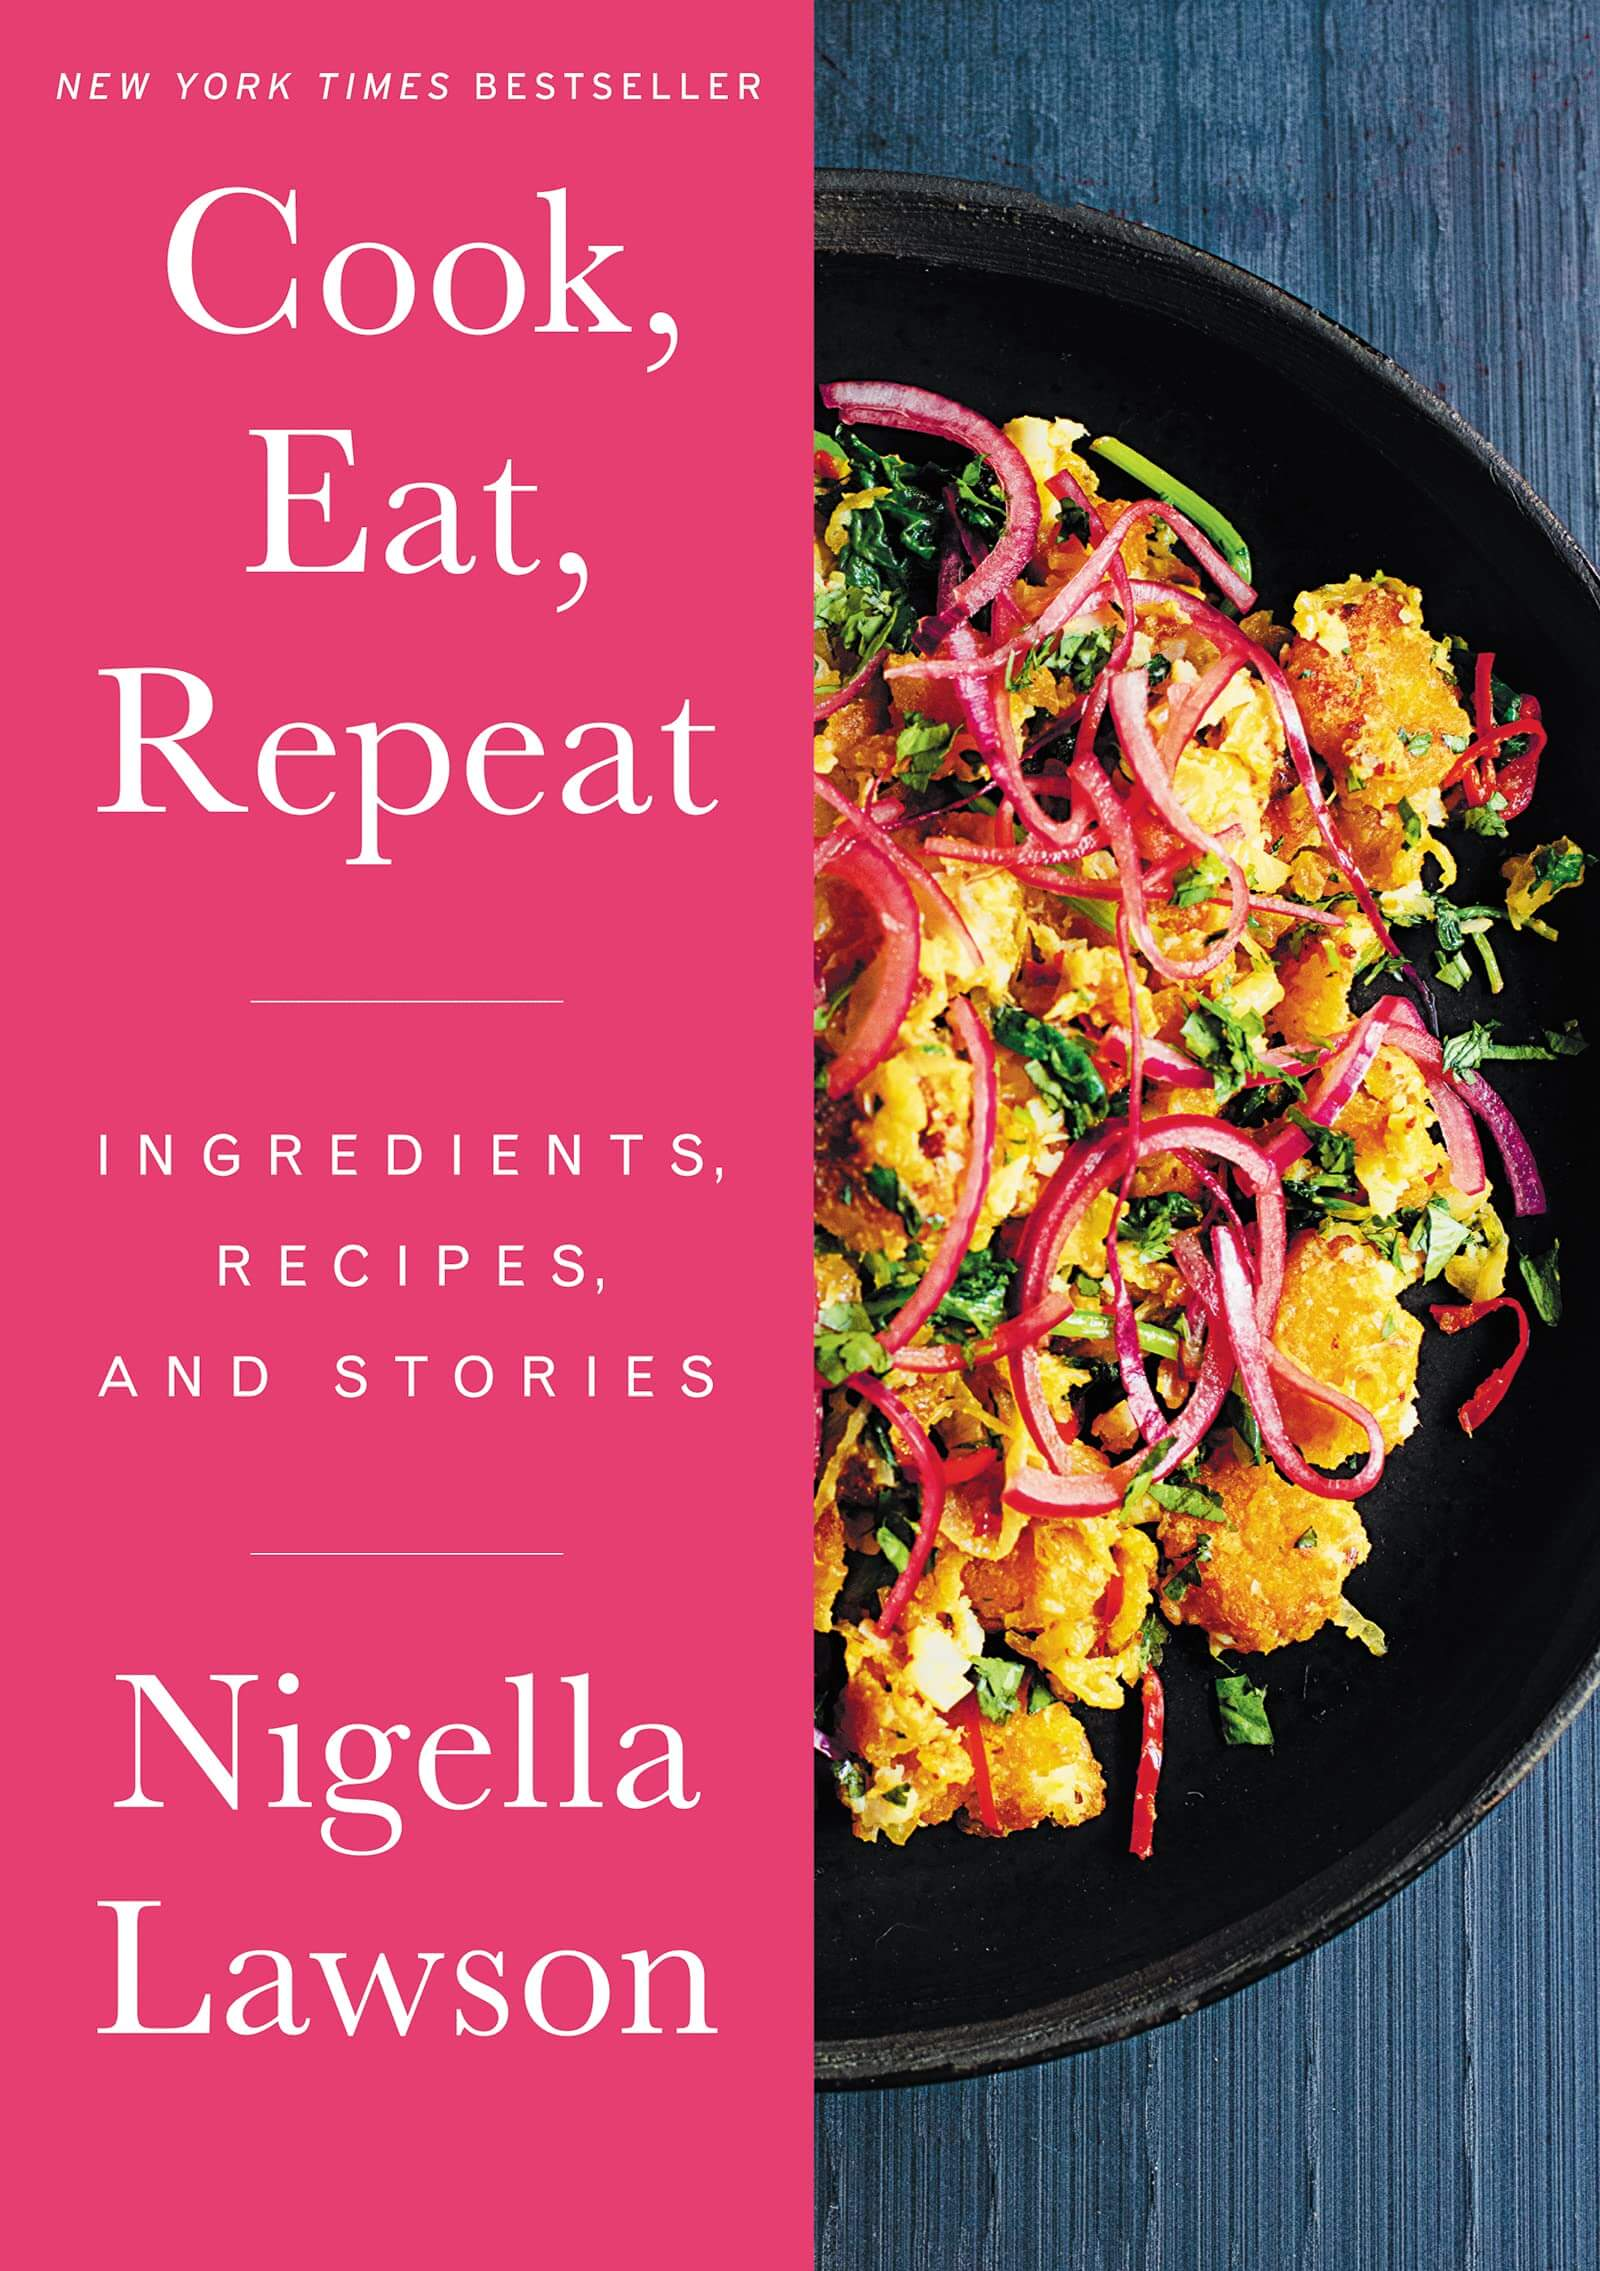 Cook, Eat, Repeat cover image